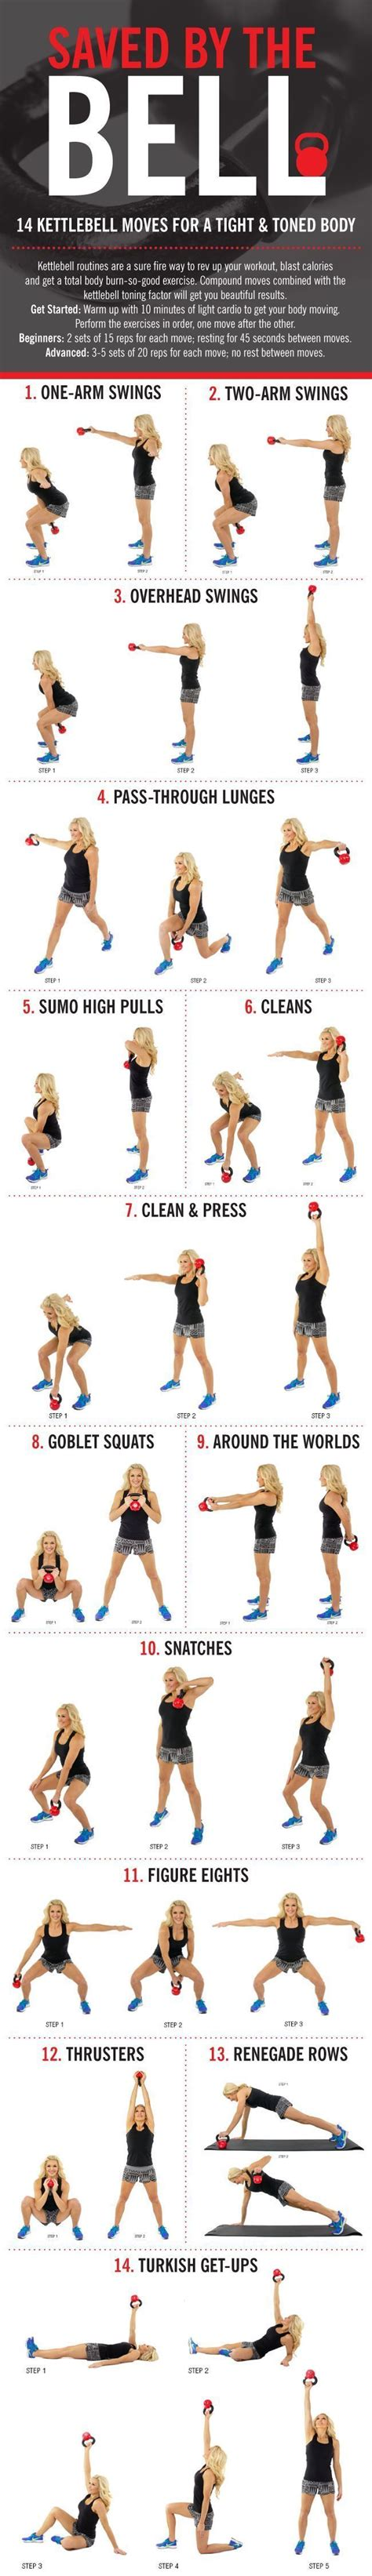 kettlebell body toned moves tight workout bell exercises kettle kettlebells exercise workouts ball skinny fitness bells mom tone swing training